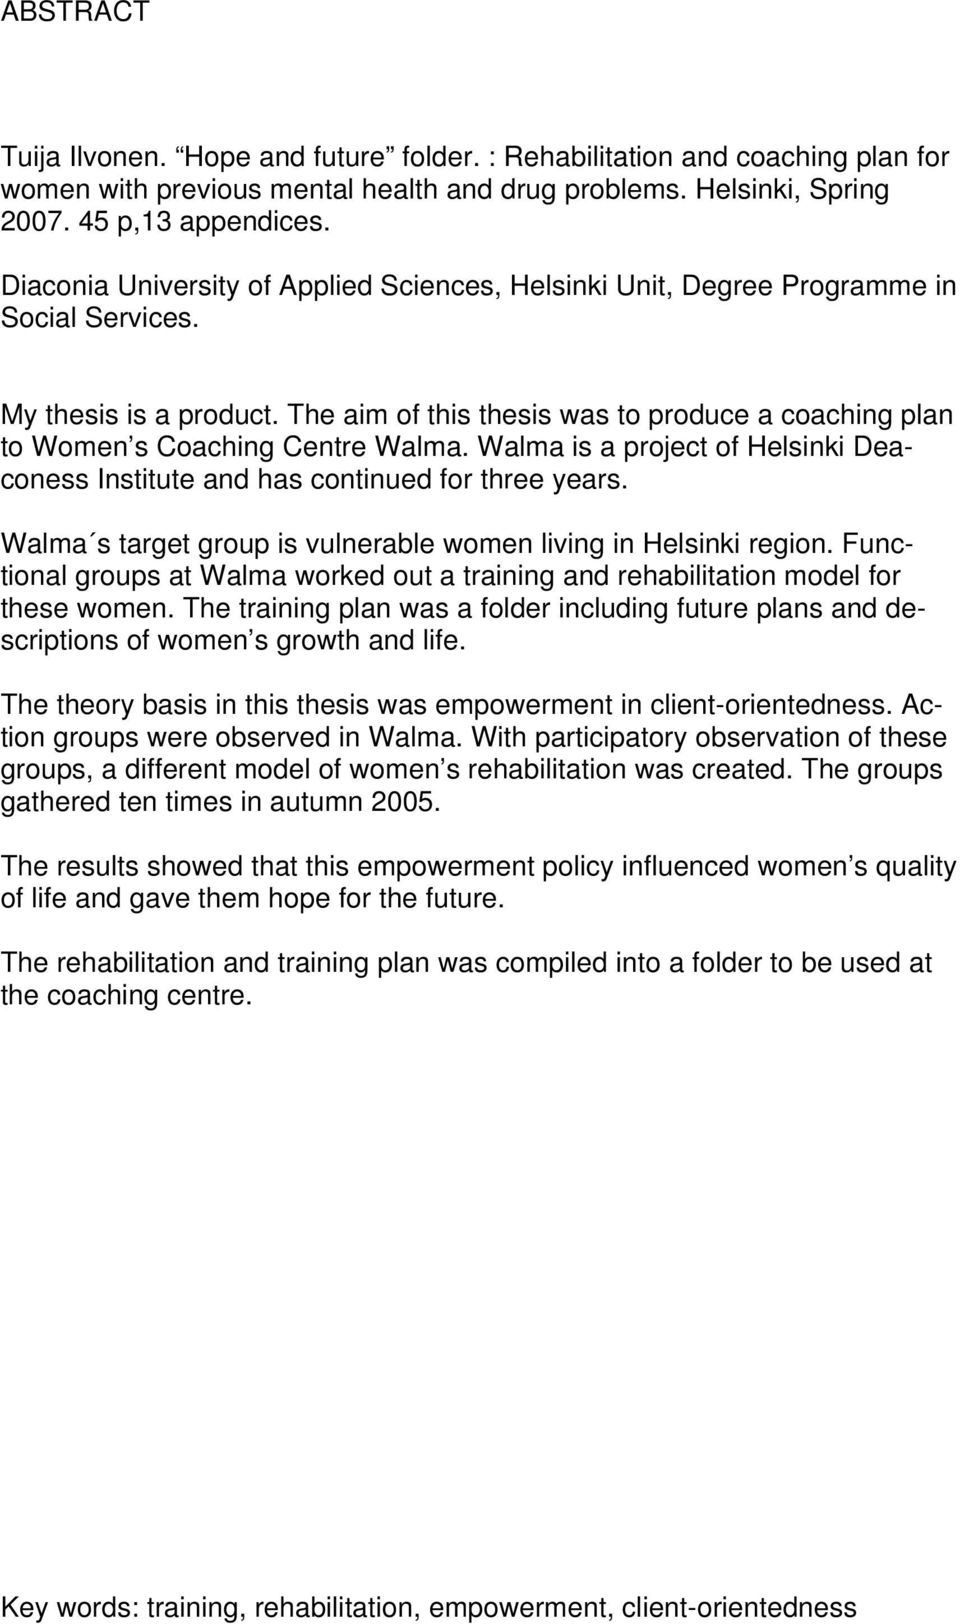 The aim of this thesis was to produce a coaching plan to Women s Coaching Centre Walma. Walma is a project of Helsinki Deaconess Institute and has continued for three years.